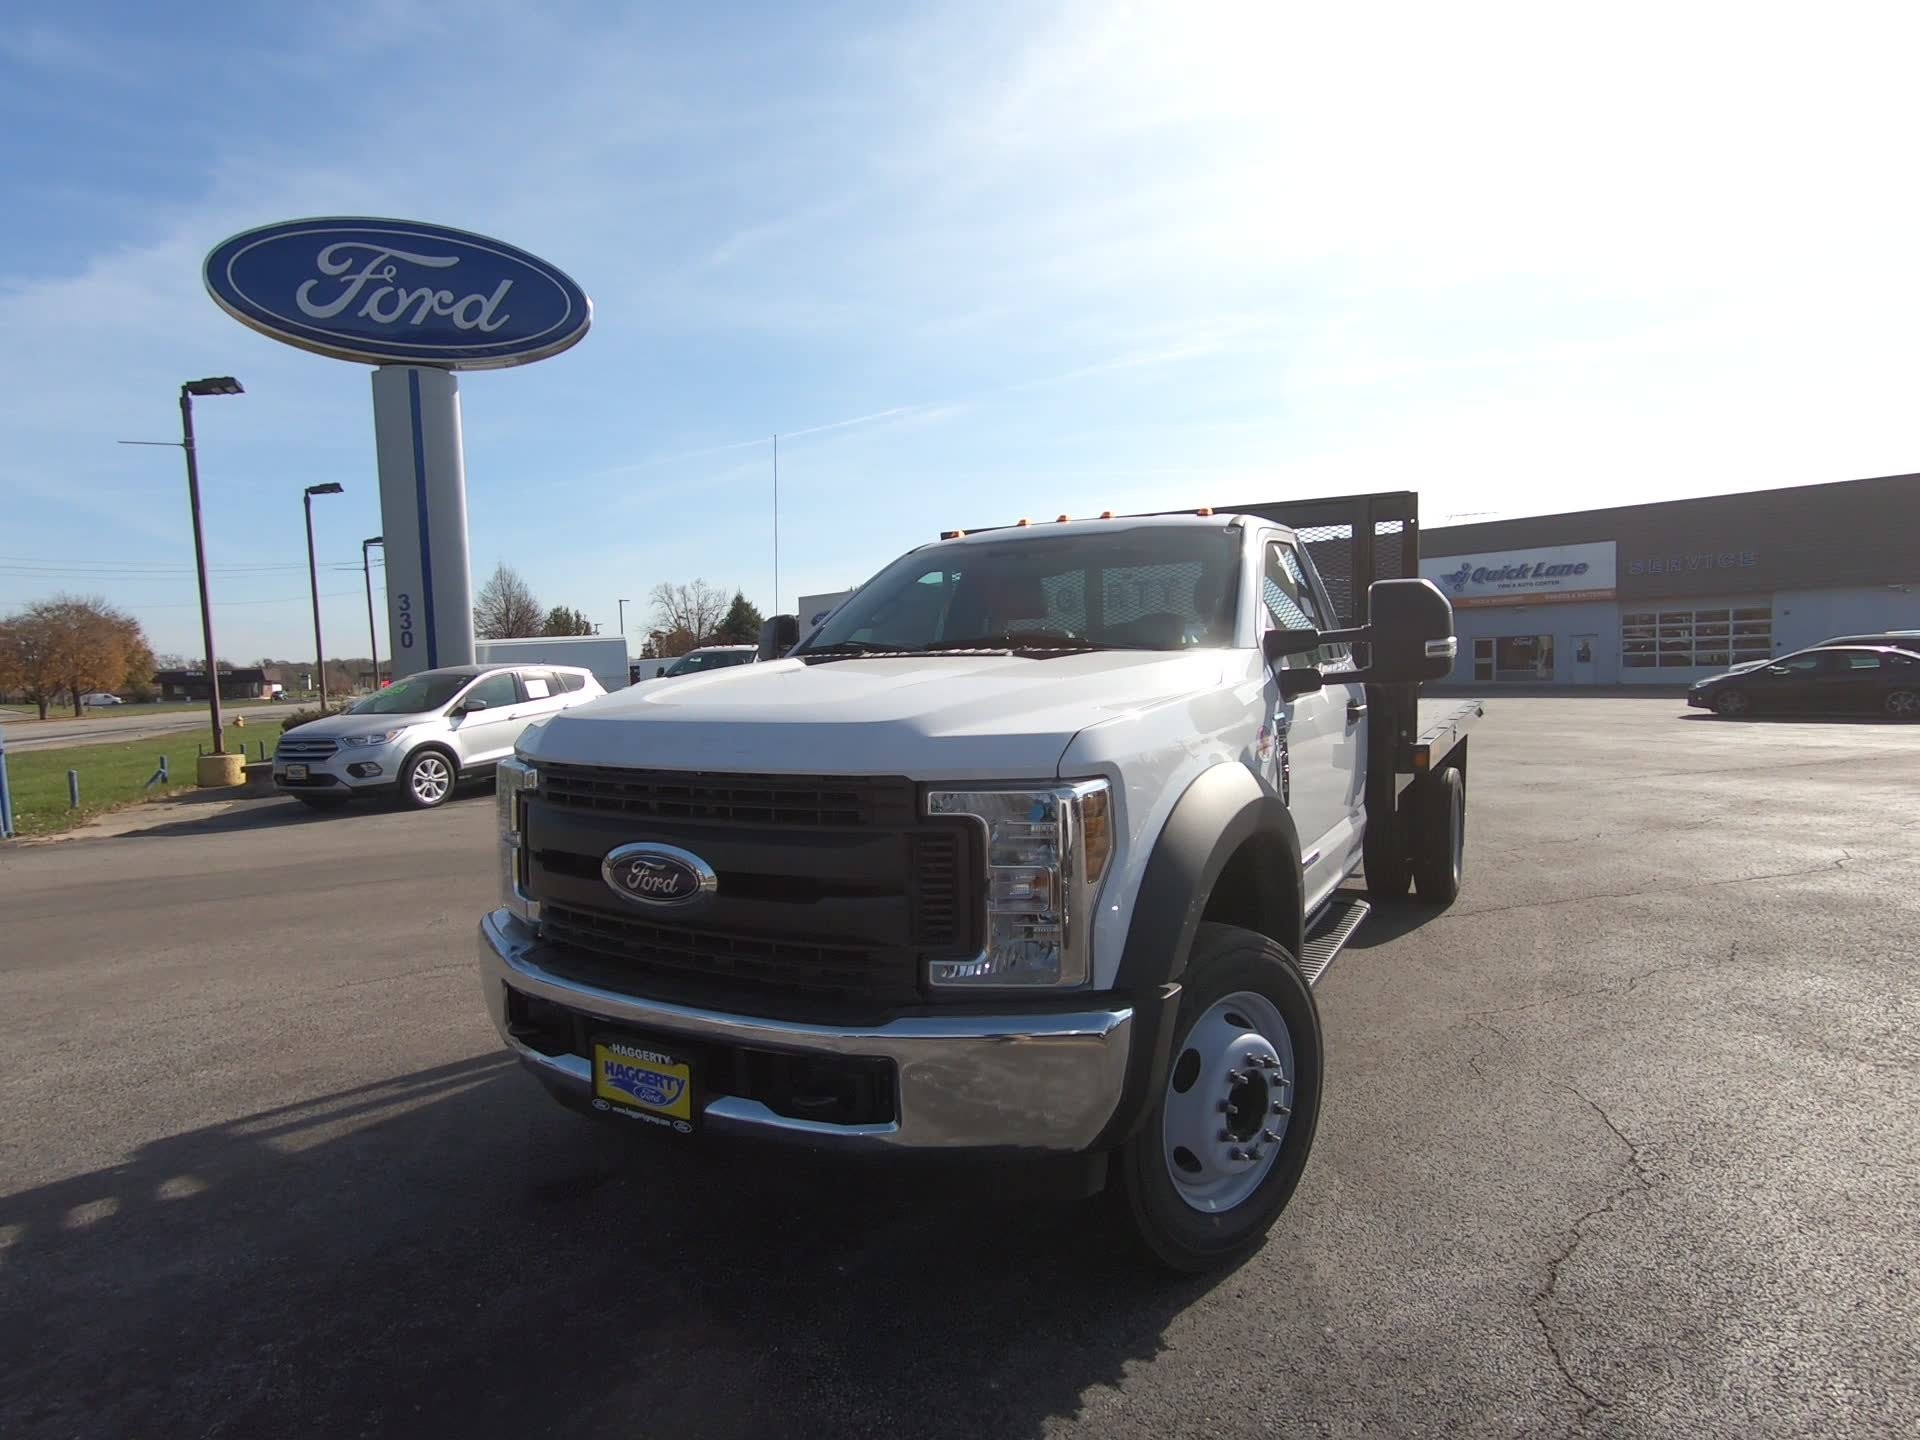 2011 Super Duty Upfitter Wires New 2019 ford Super Duty F 450 Drw Xl Rwd Regular Cab Chassis Cab Of 2011 Super Duty Upfitter Wires